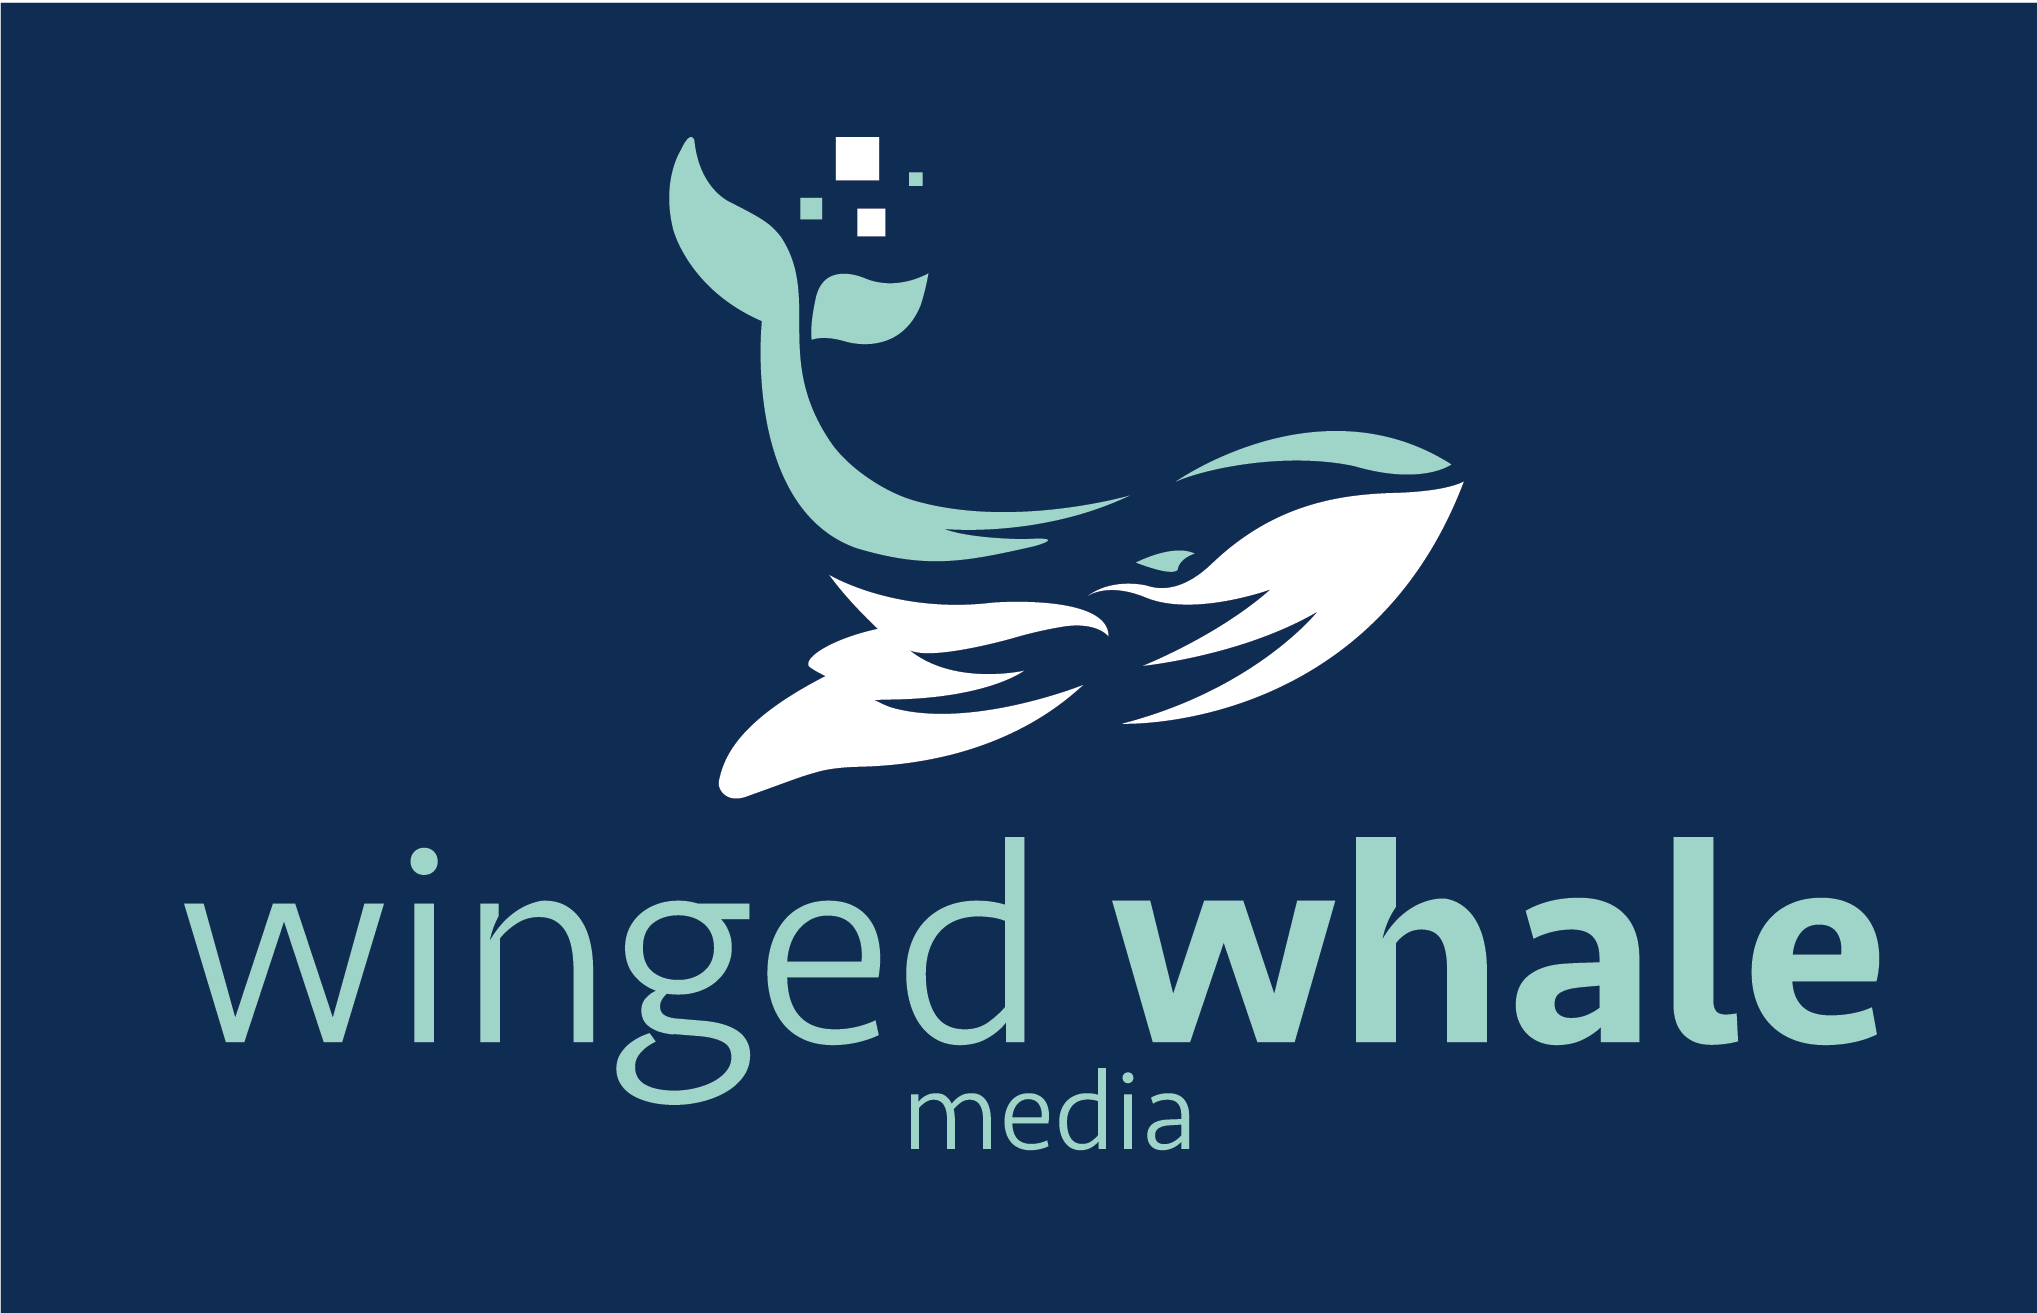 Winged Whale Media